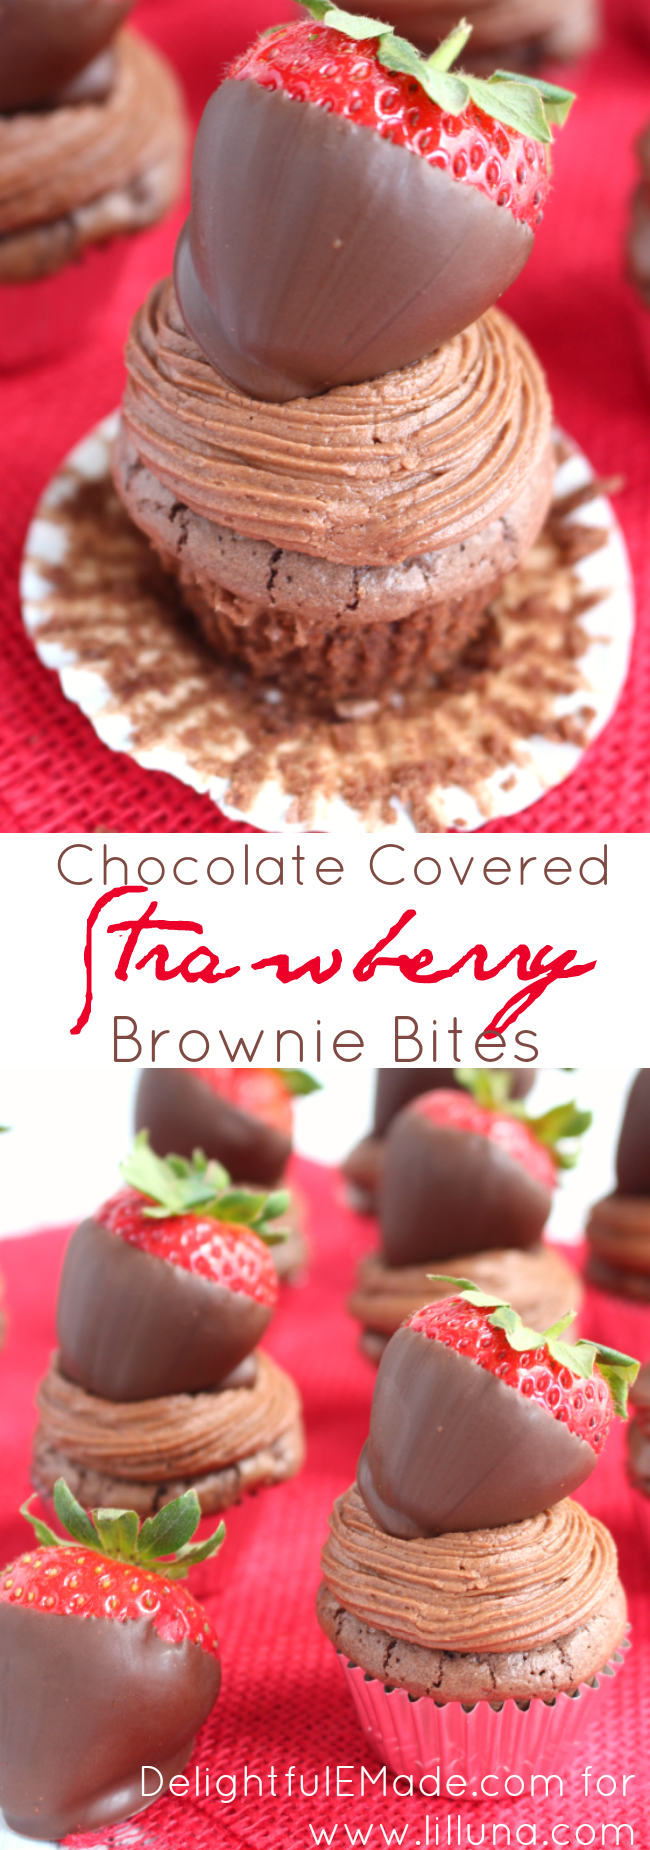 The most delicious little brownies you'll ever eat!  Rich, fugdy mini brownies are frosted with a cocoa cream cheese frosting and topped with a chocolate covered strawberry.  A chocolate-lovers dream!